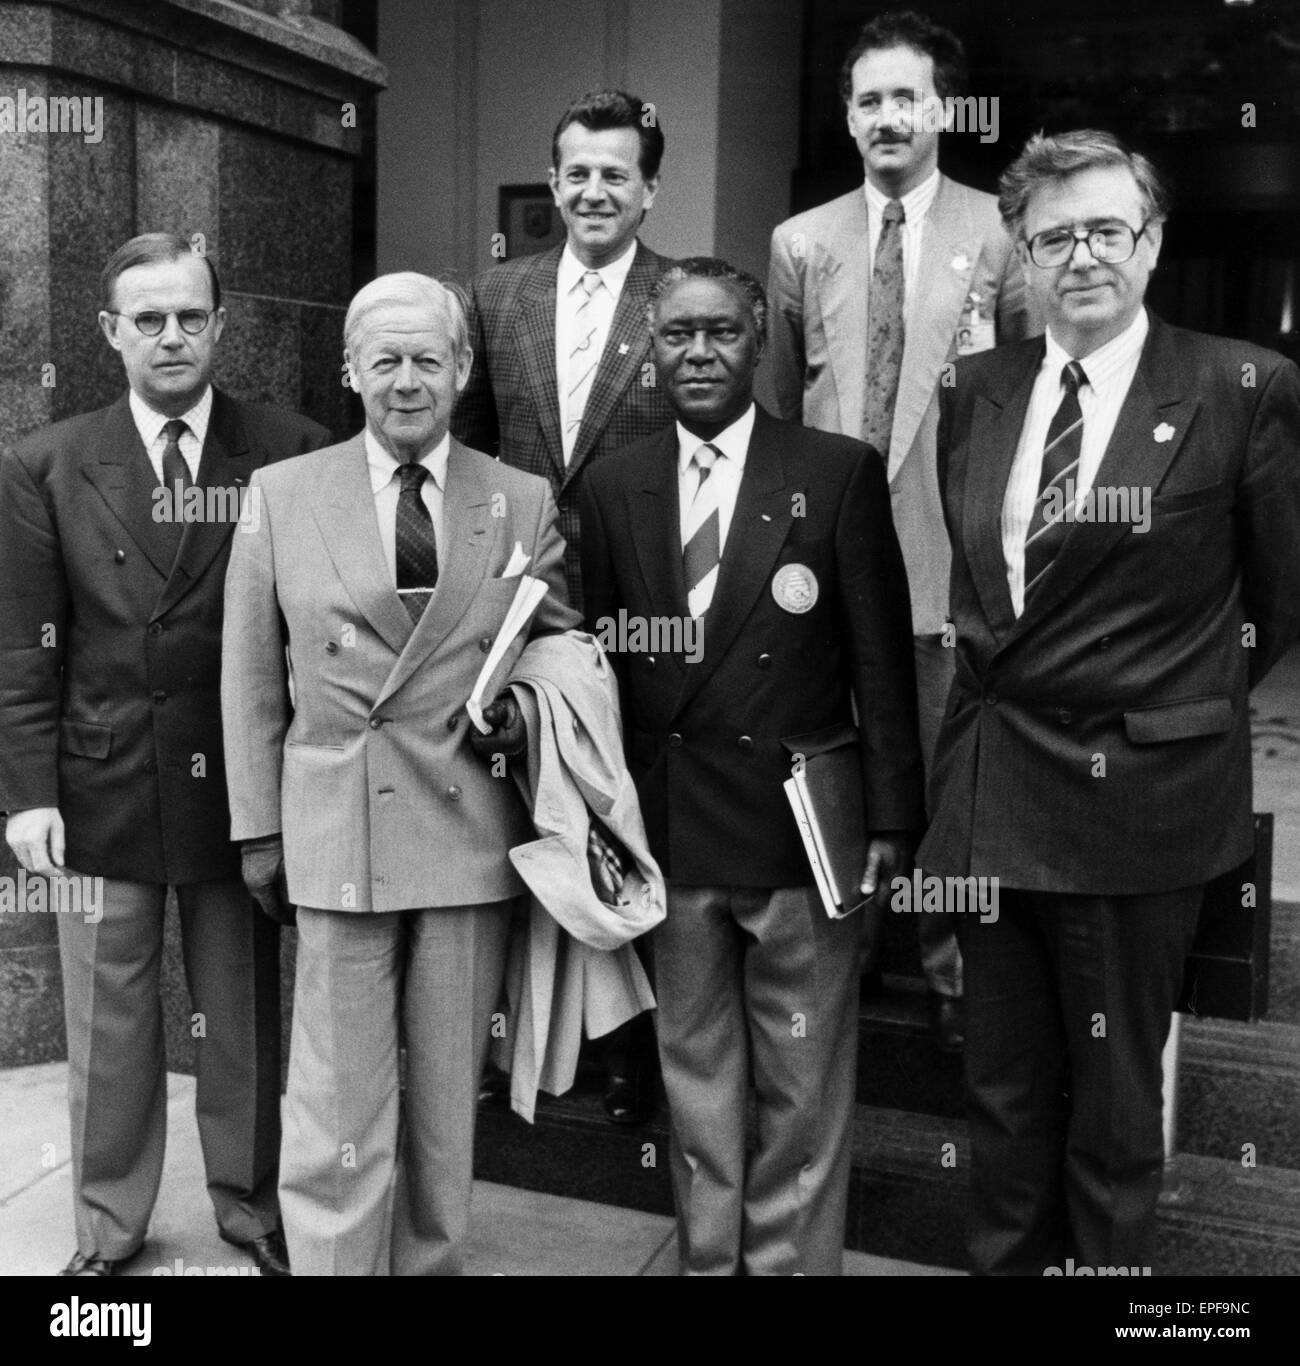 Manchester Olympic Bid for the 1996 Games, March 1990.  The Olympic committee in Manchester. - Stock Image